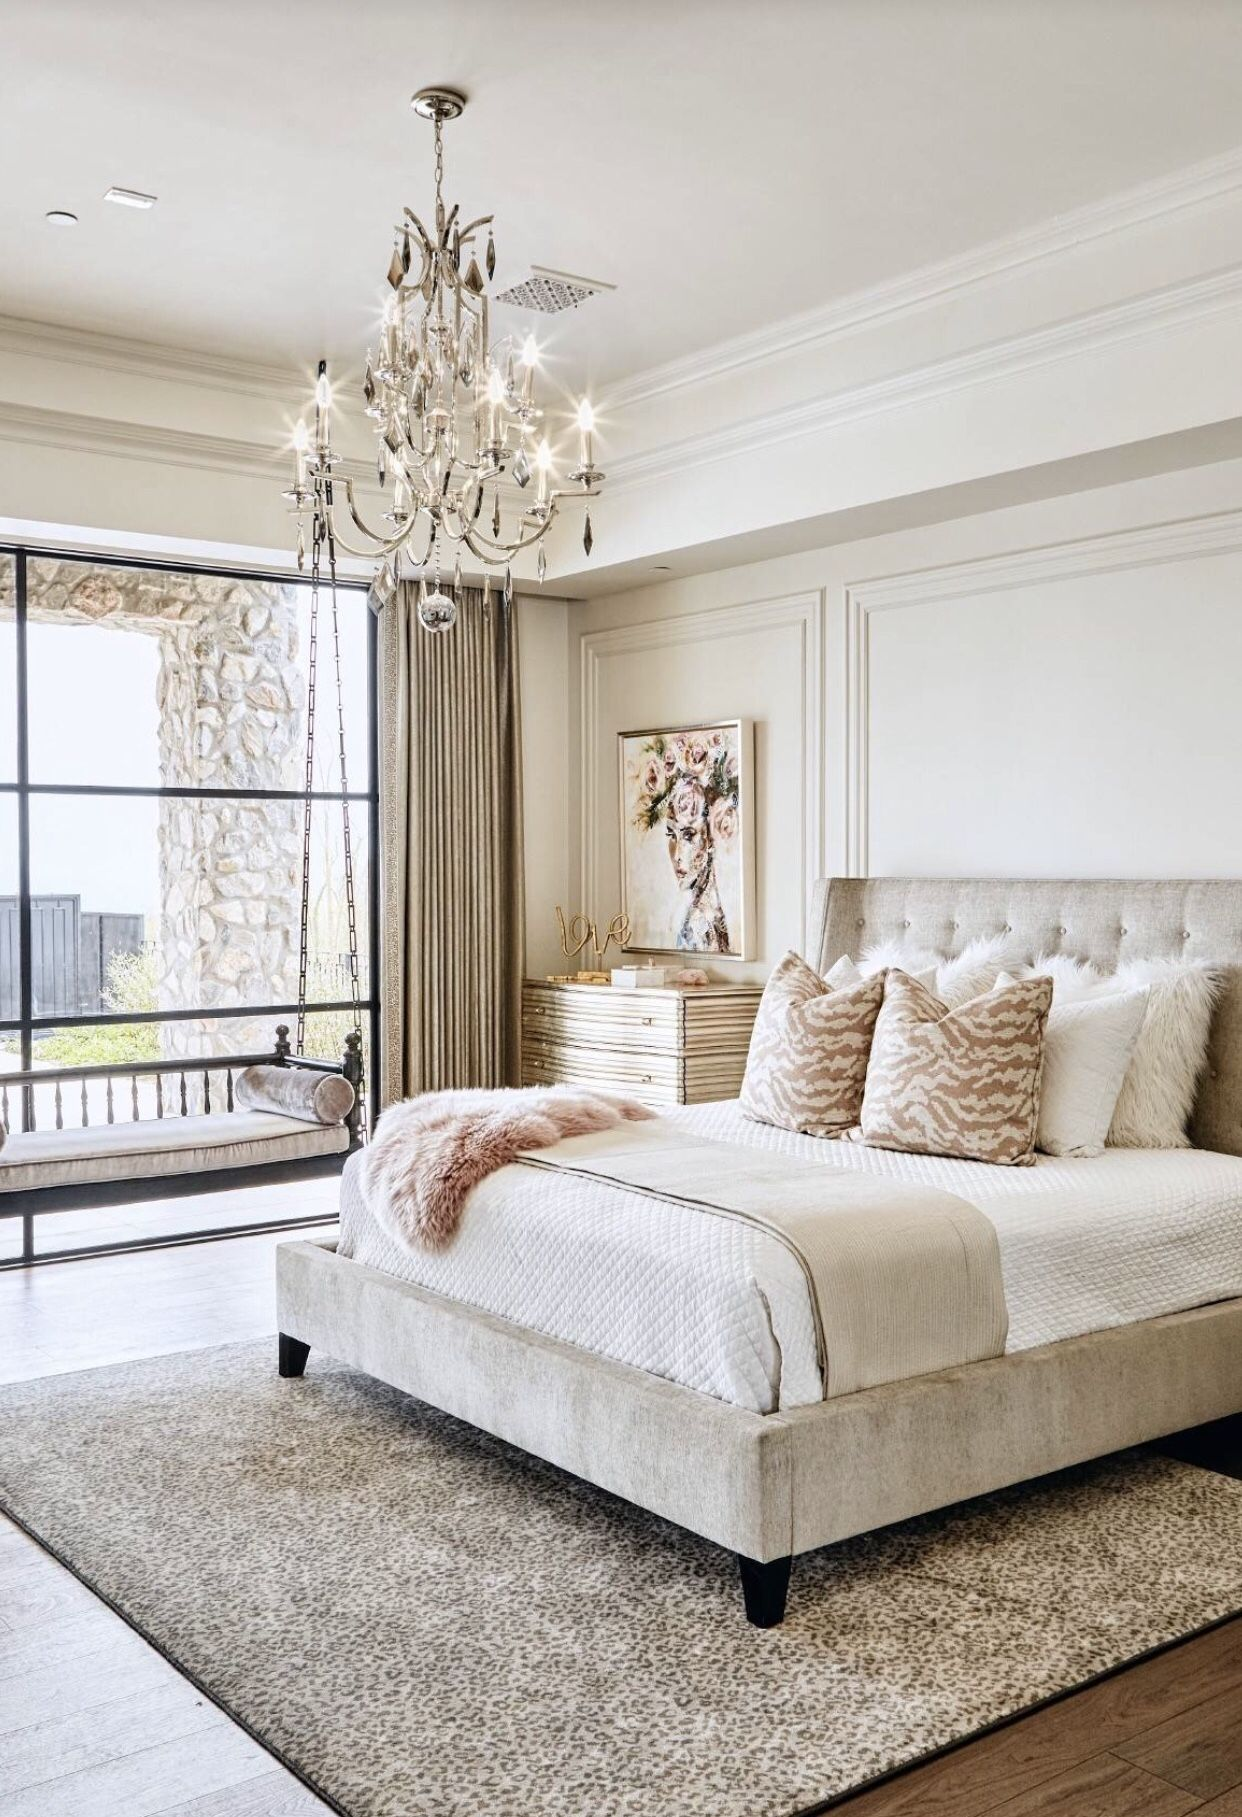 50 Master Bedroom Ideas That Will Make You Upgrade Yours The Lifestyle Loft In 2020 Transitional Bedroom Design Master Bedroom Inspiration Luxurious Bedrooms